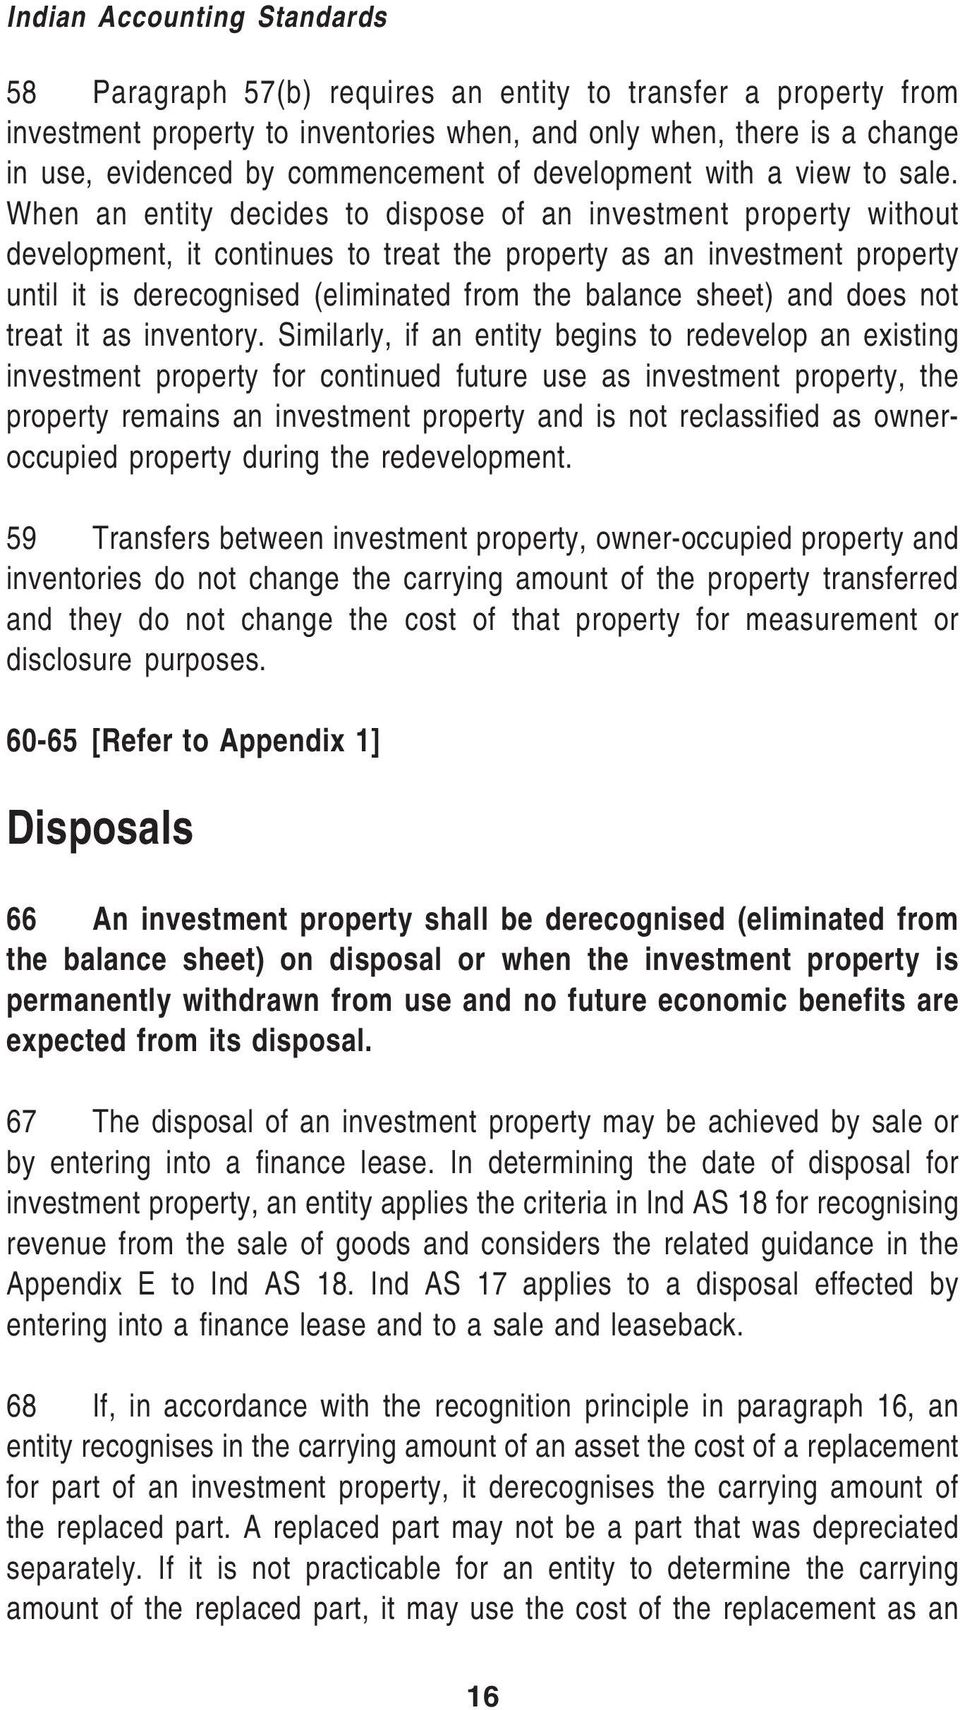 When an entity decides to dispose of an investment property without development, it continues to treat the property as an investment property until it is derecognised (eliminated from the balance